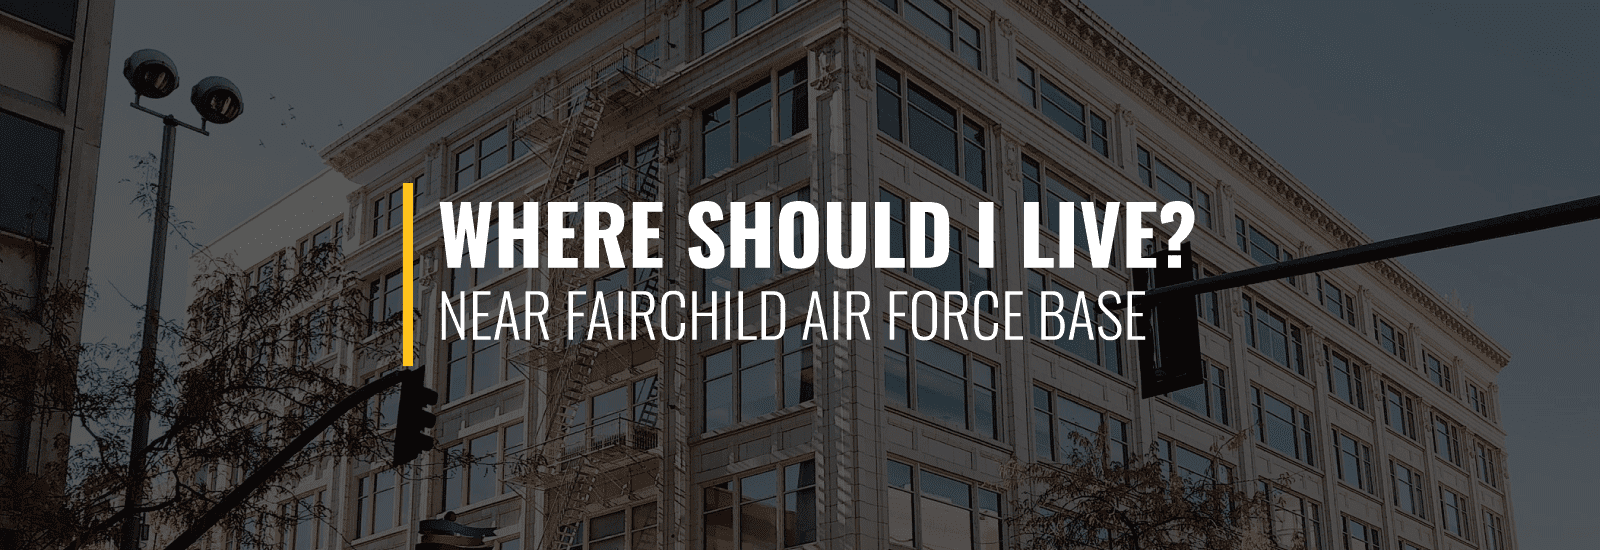 Where Should I Live Near Fairchild AFB